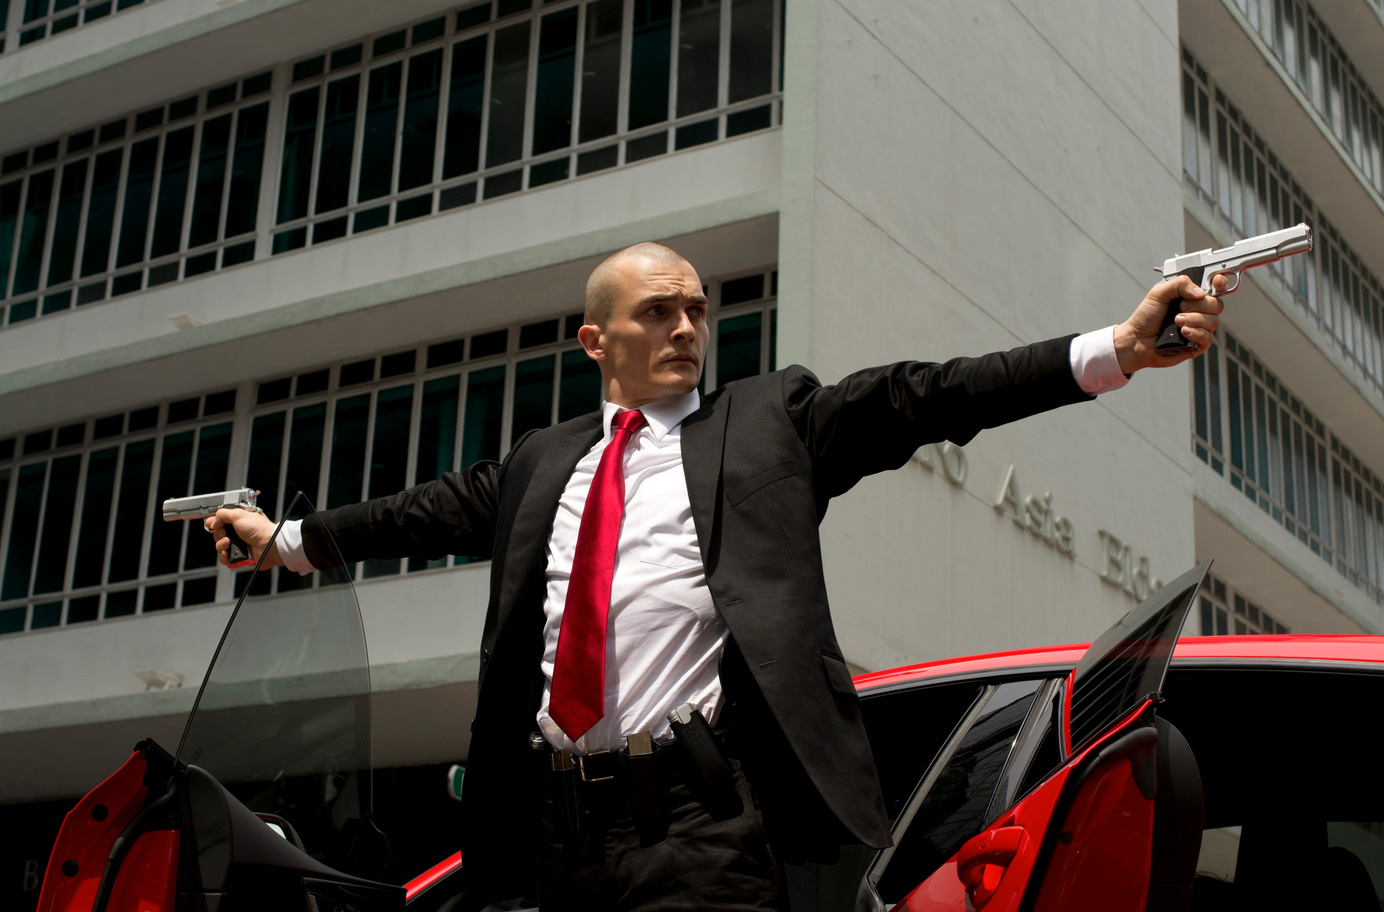 Here's a first look at Agent 47 in the upcoming movie 'Hitman: Agent 47'